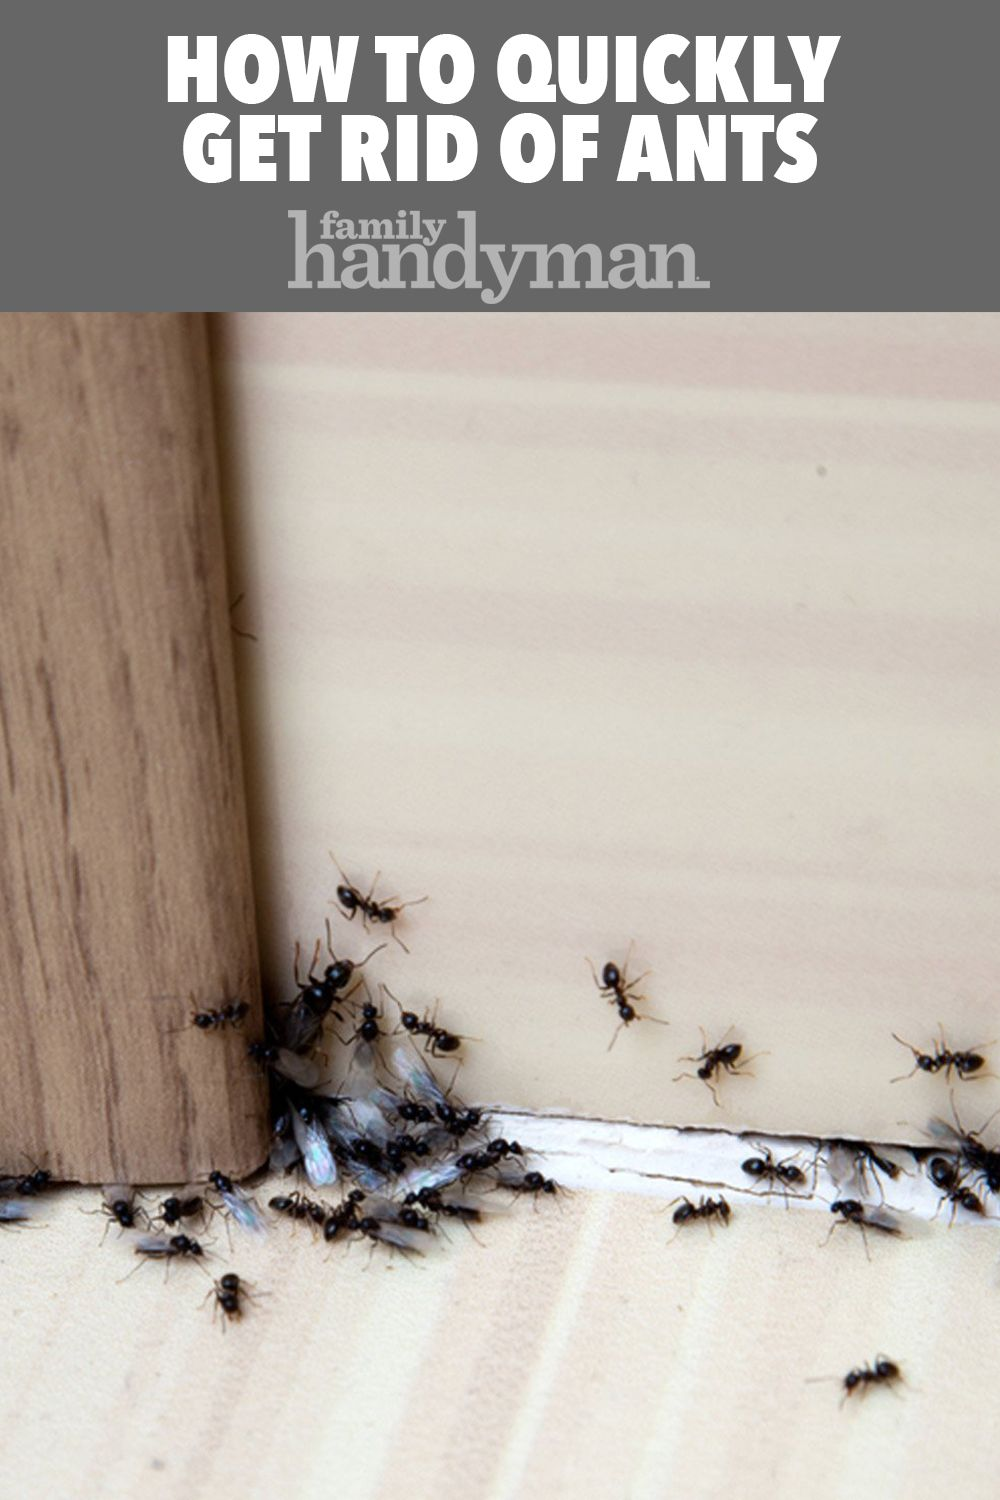 How To Quickly Get Rid Of Ants Get Rid Of Ants Rid Of Ants Ants